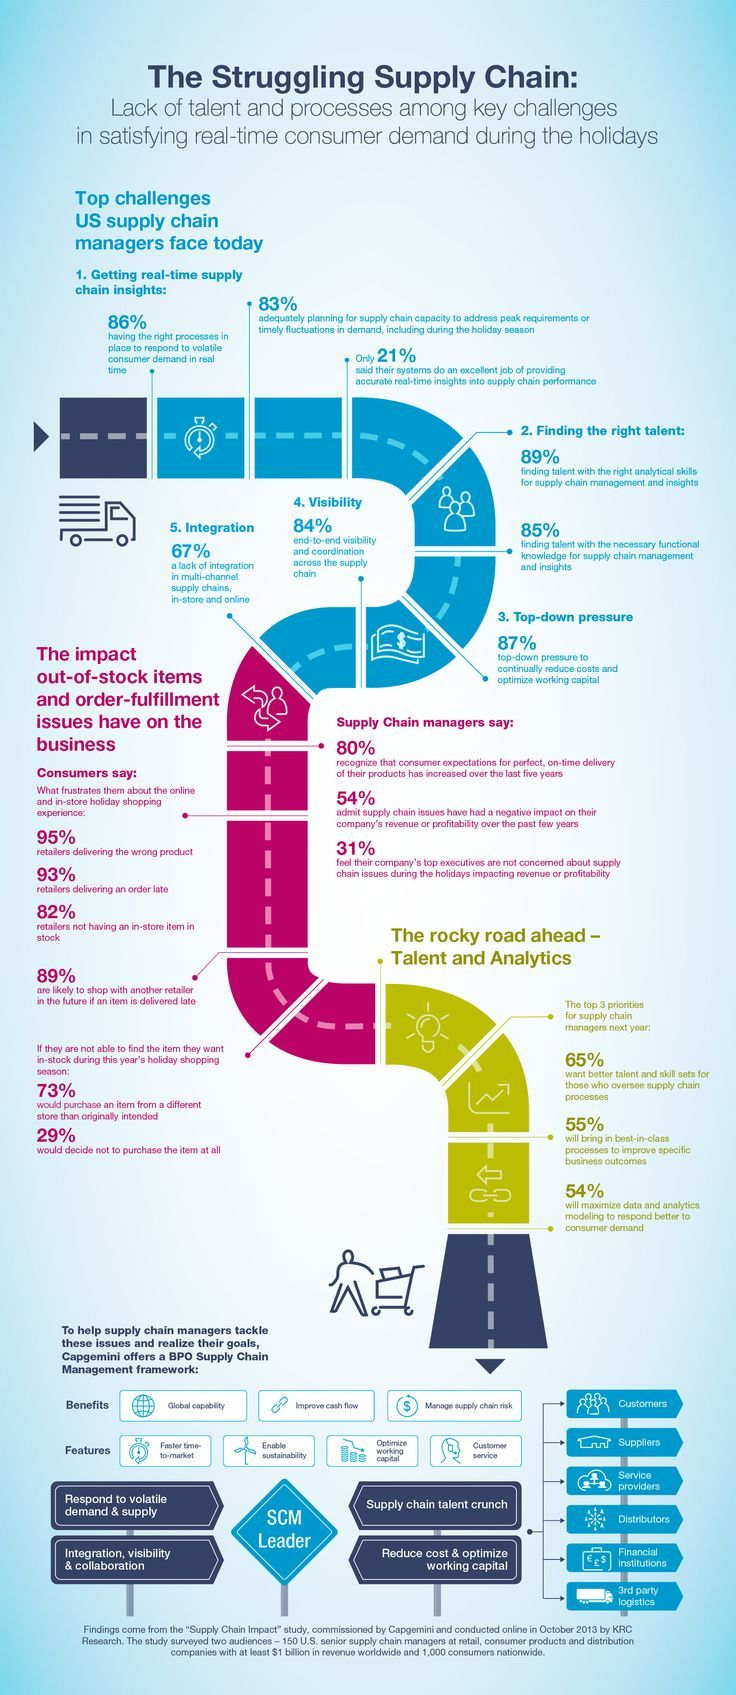 Challenges of Supply Chain Management. Check out that cool